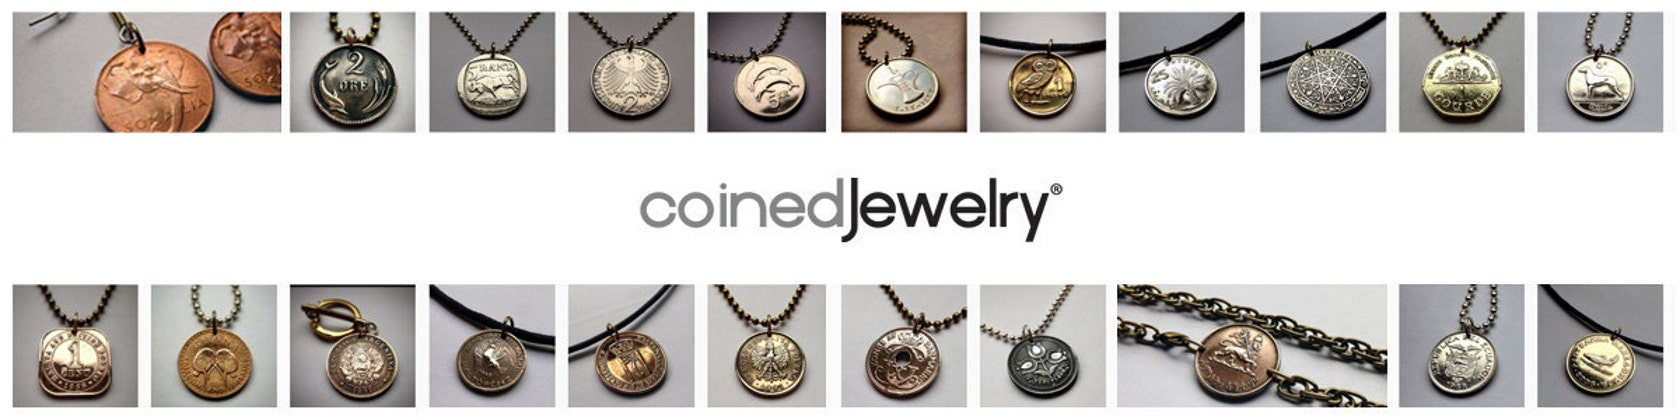 Unique Hand Crafted Coin Jewelry Pendants Von Coinedjewelry Auf Etsy